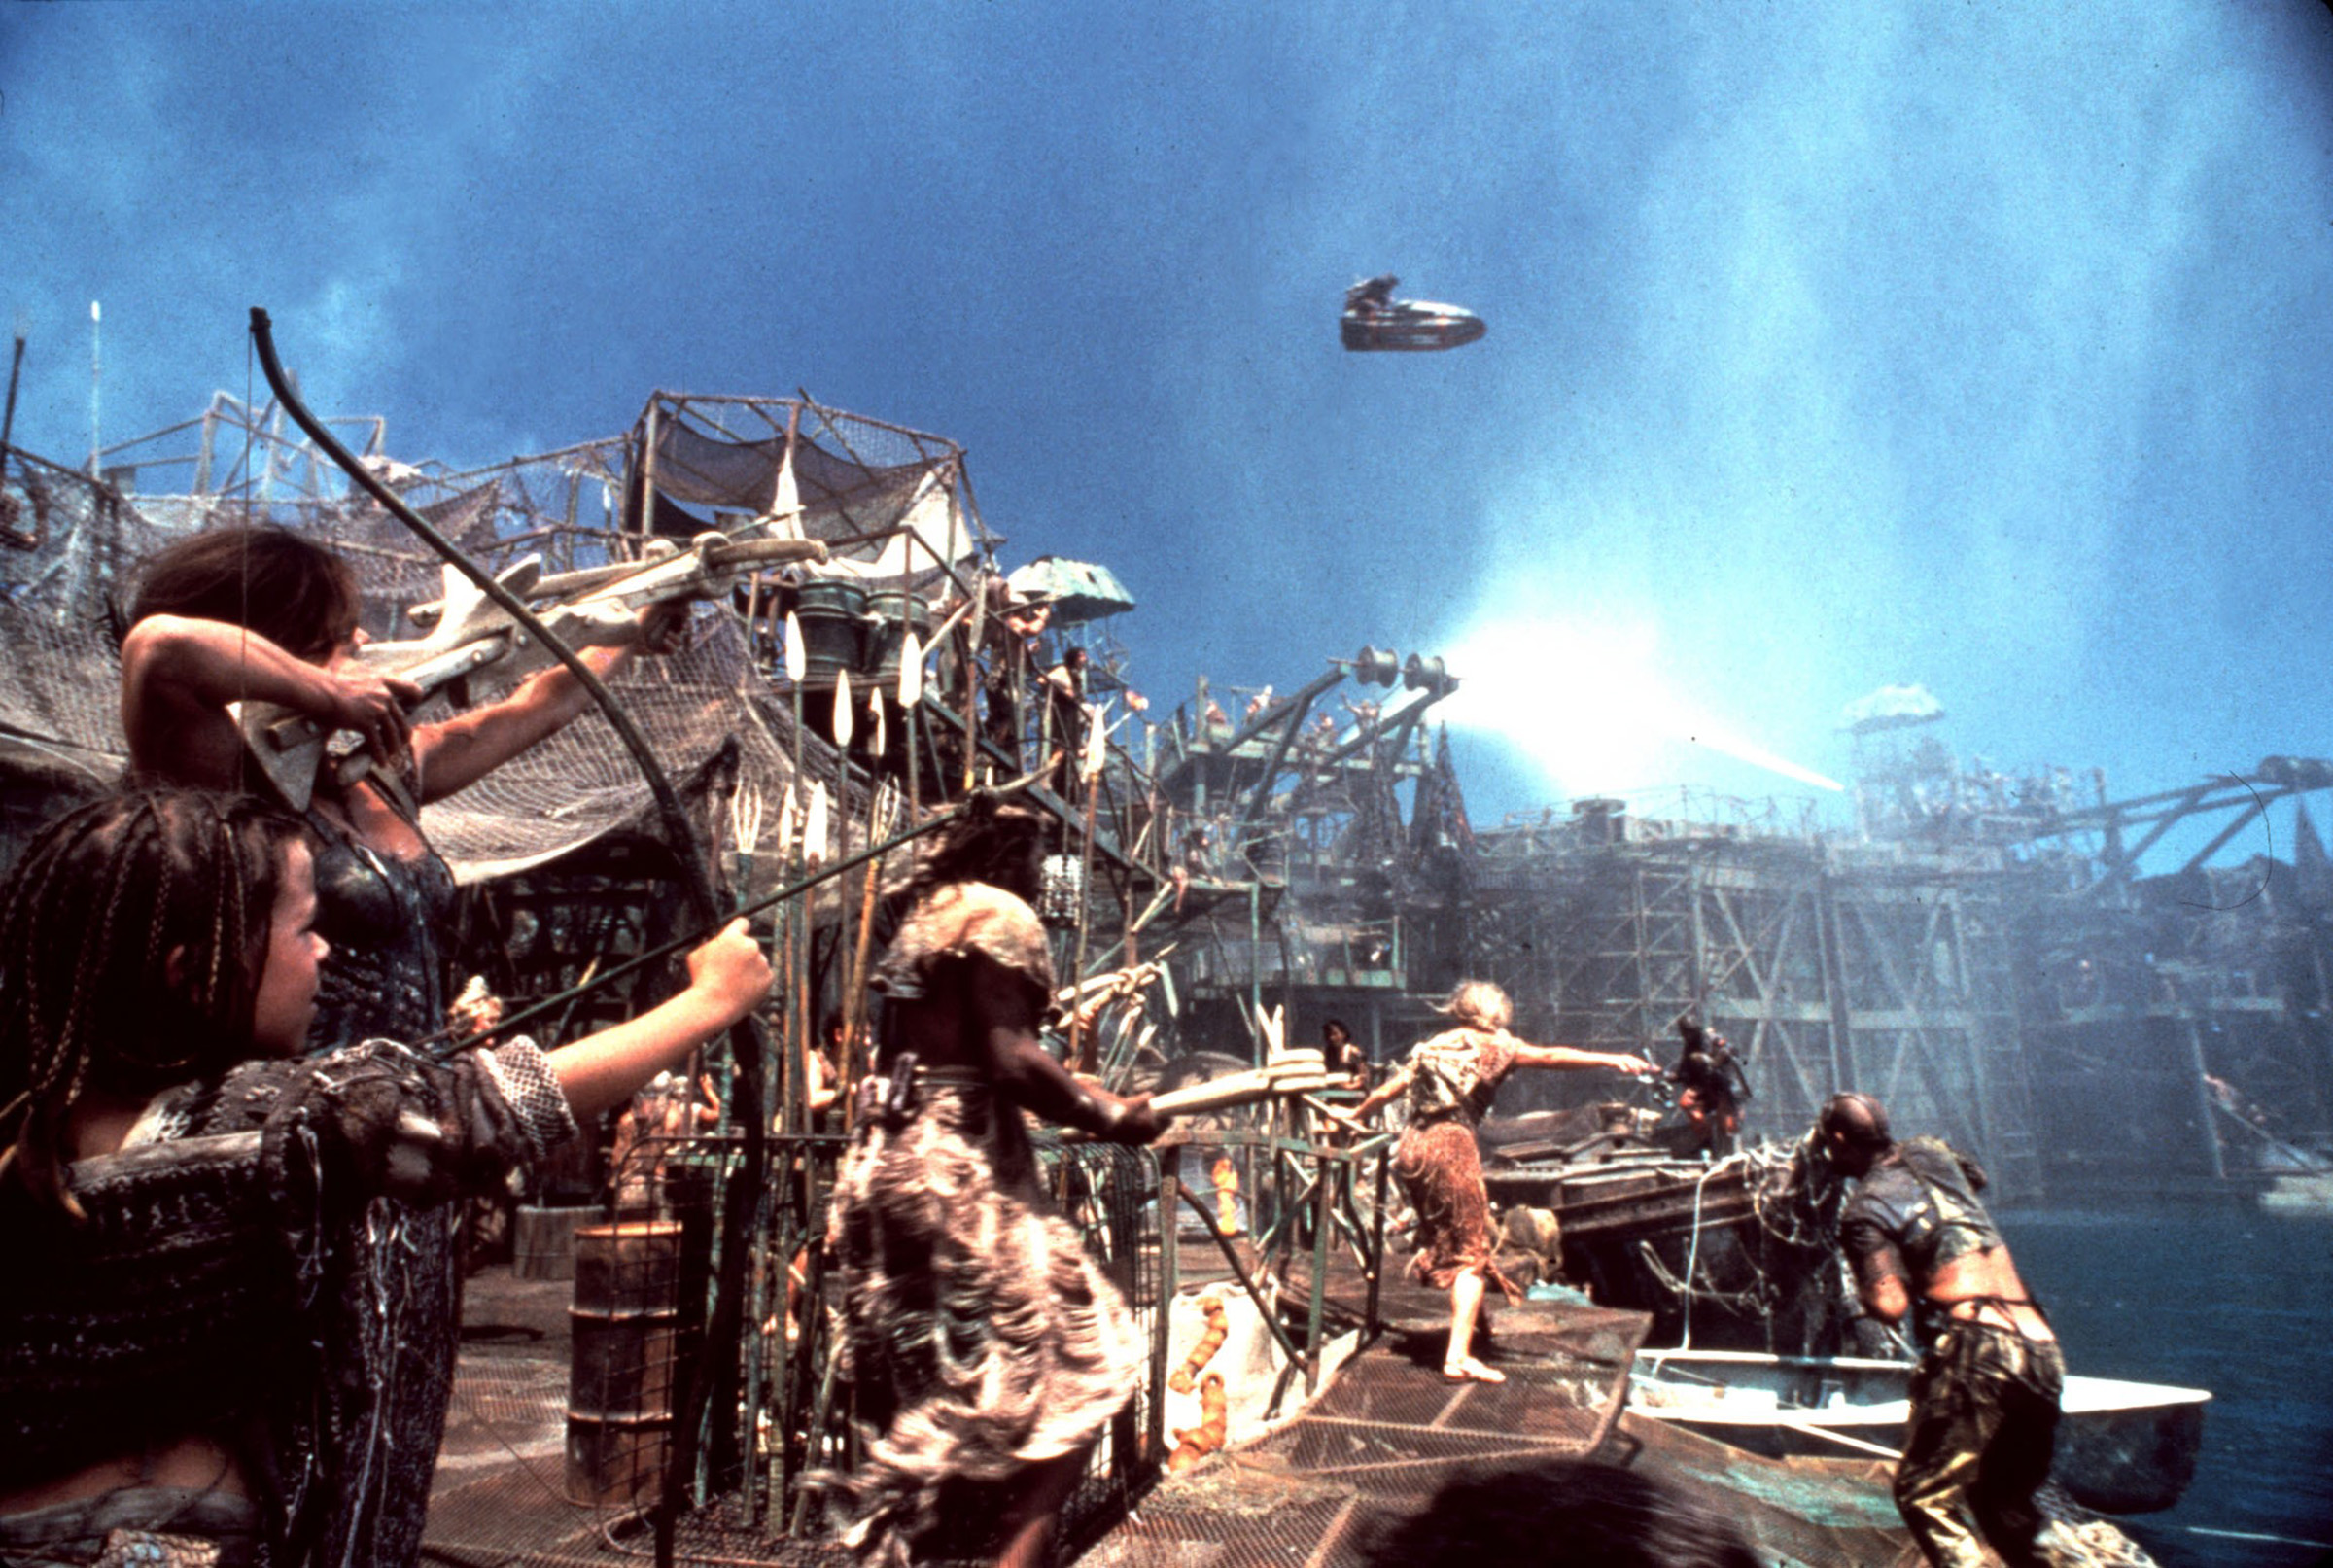 A still from the 1995 film 'Waterworld'.